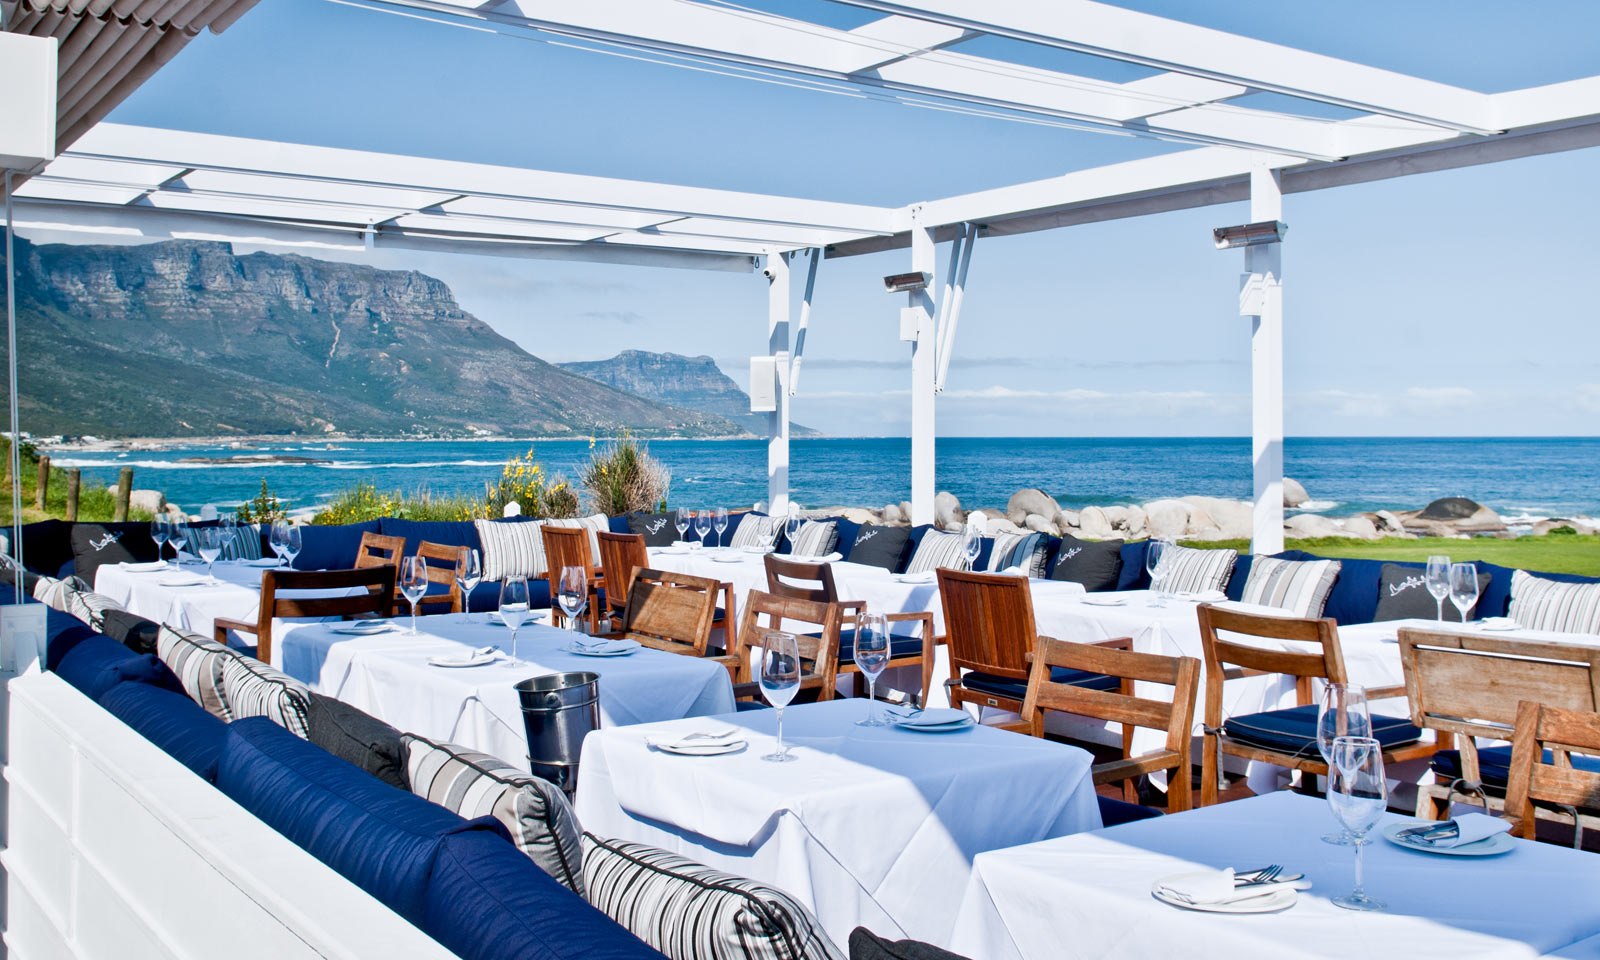 Sea Views, Sunsets, And Sand: The Best Beach Bars In Cape Town photo